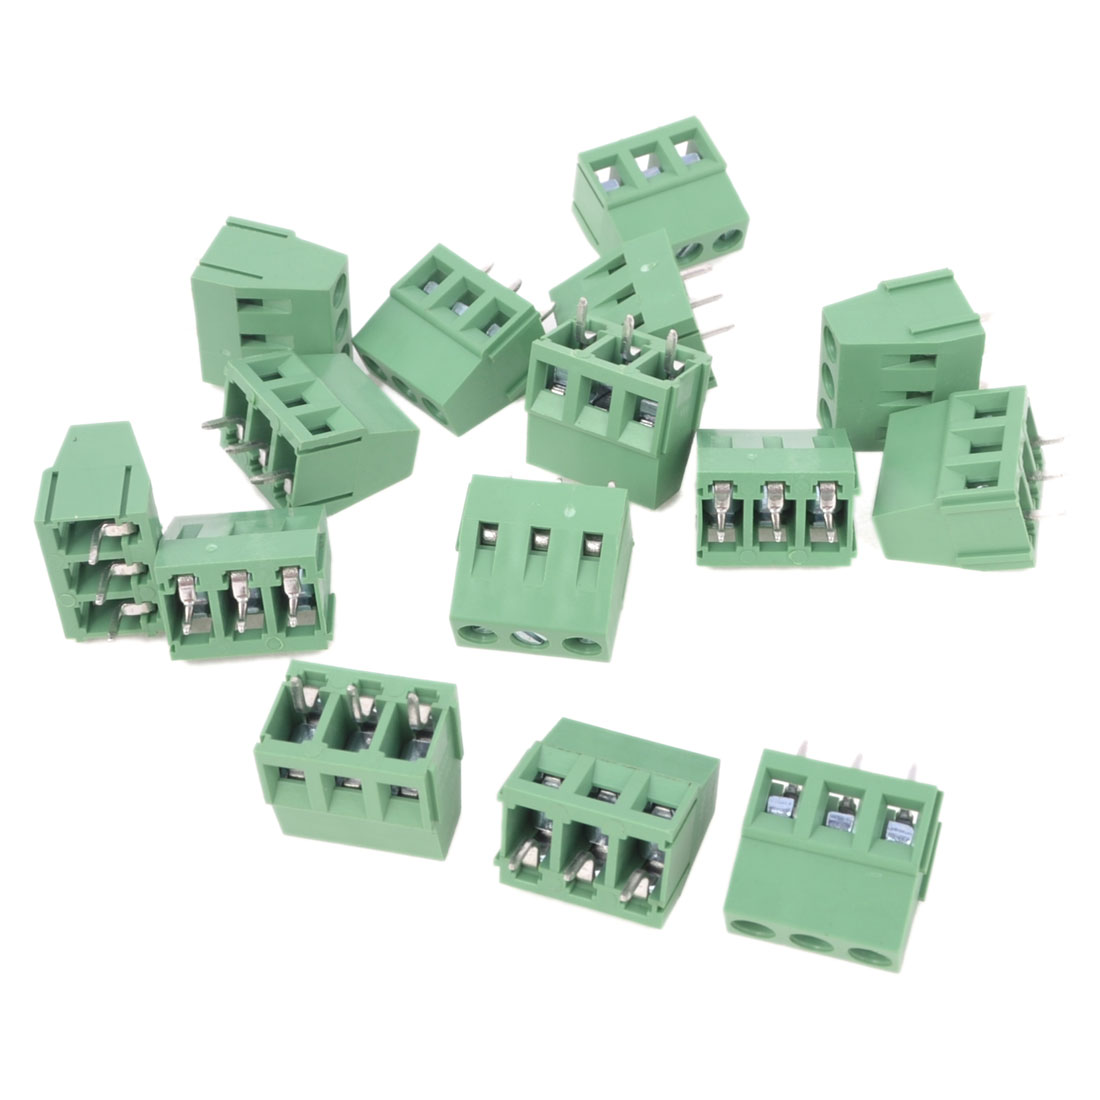 15Pcs 300V 10A 5mm Pitch 3 Poles Poles PCB Screw Terminal Block Connector Male Green